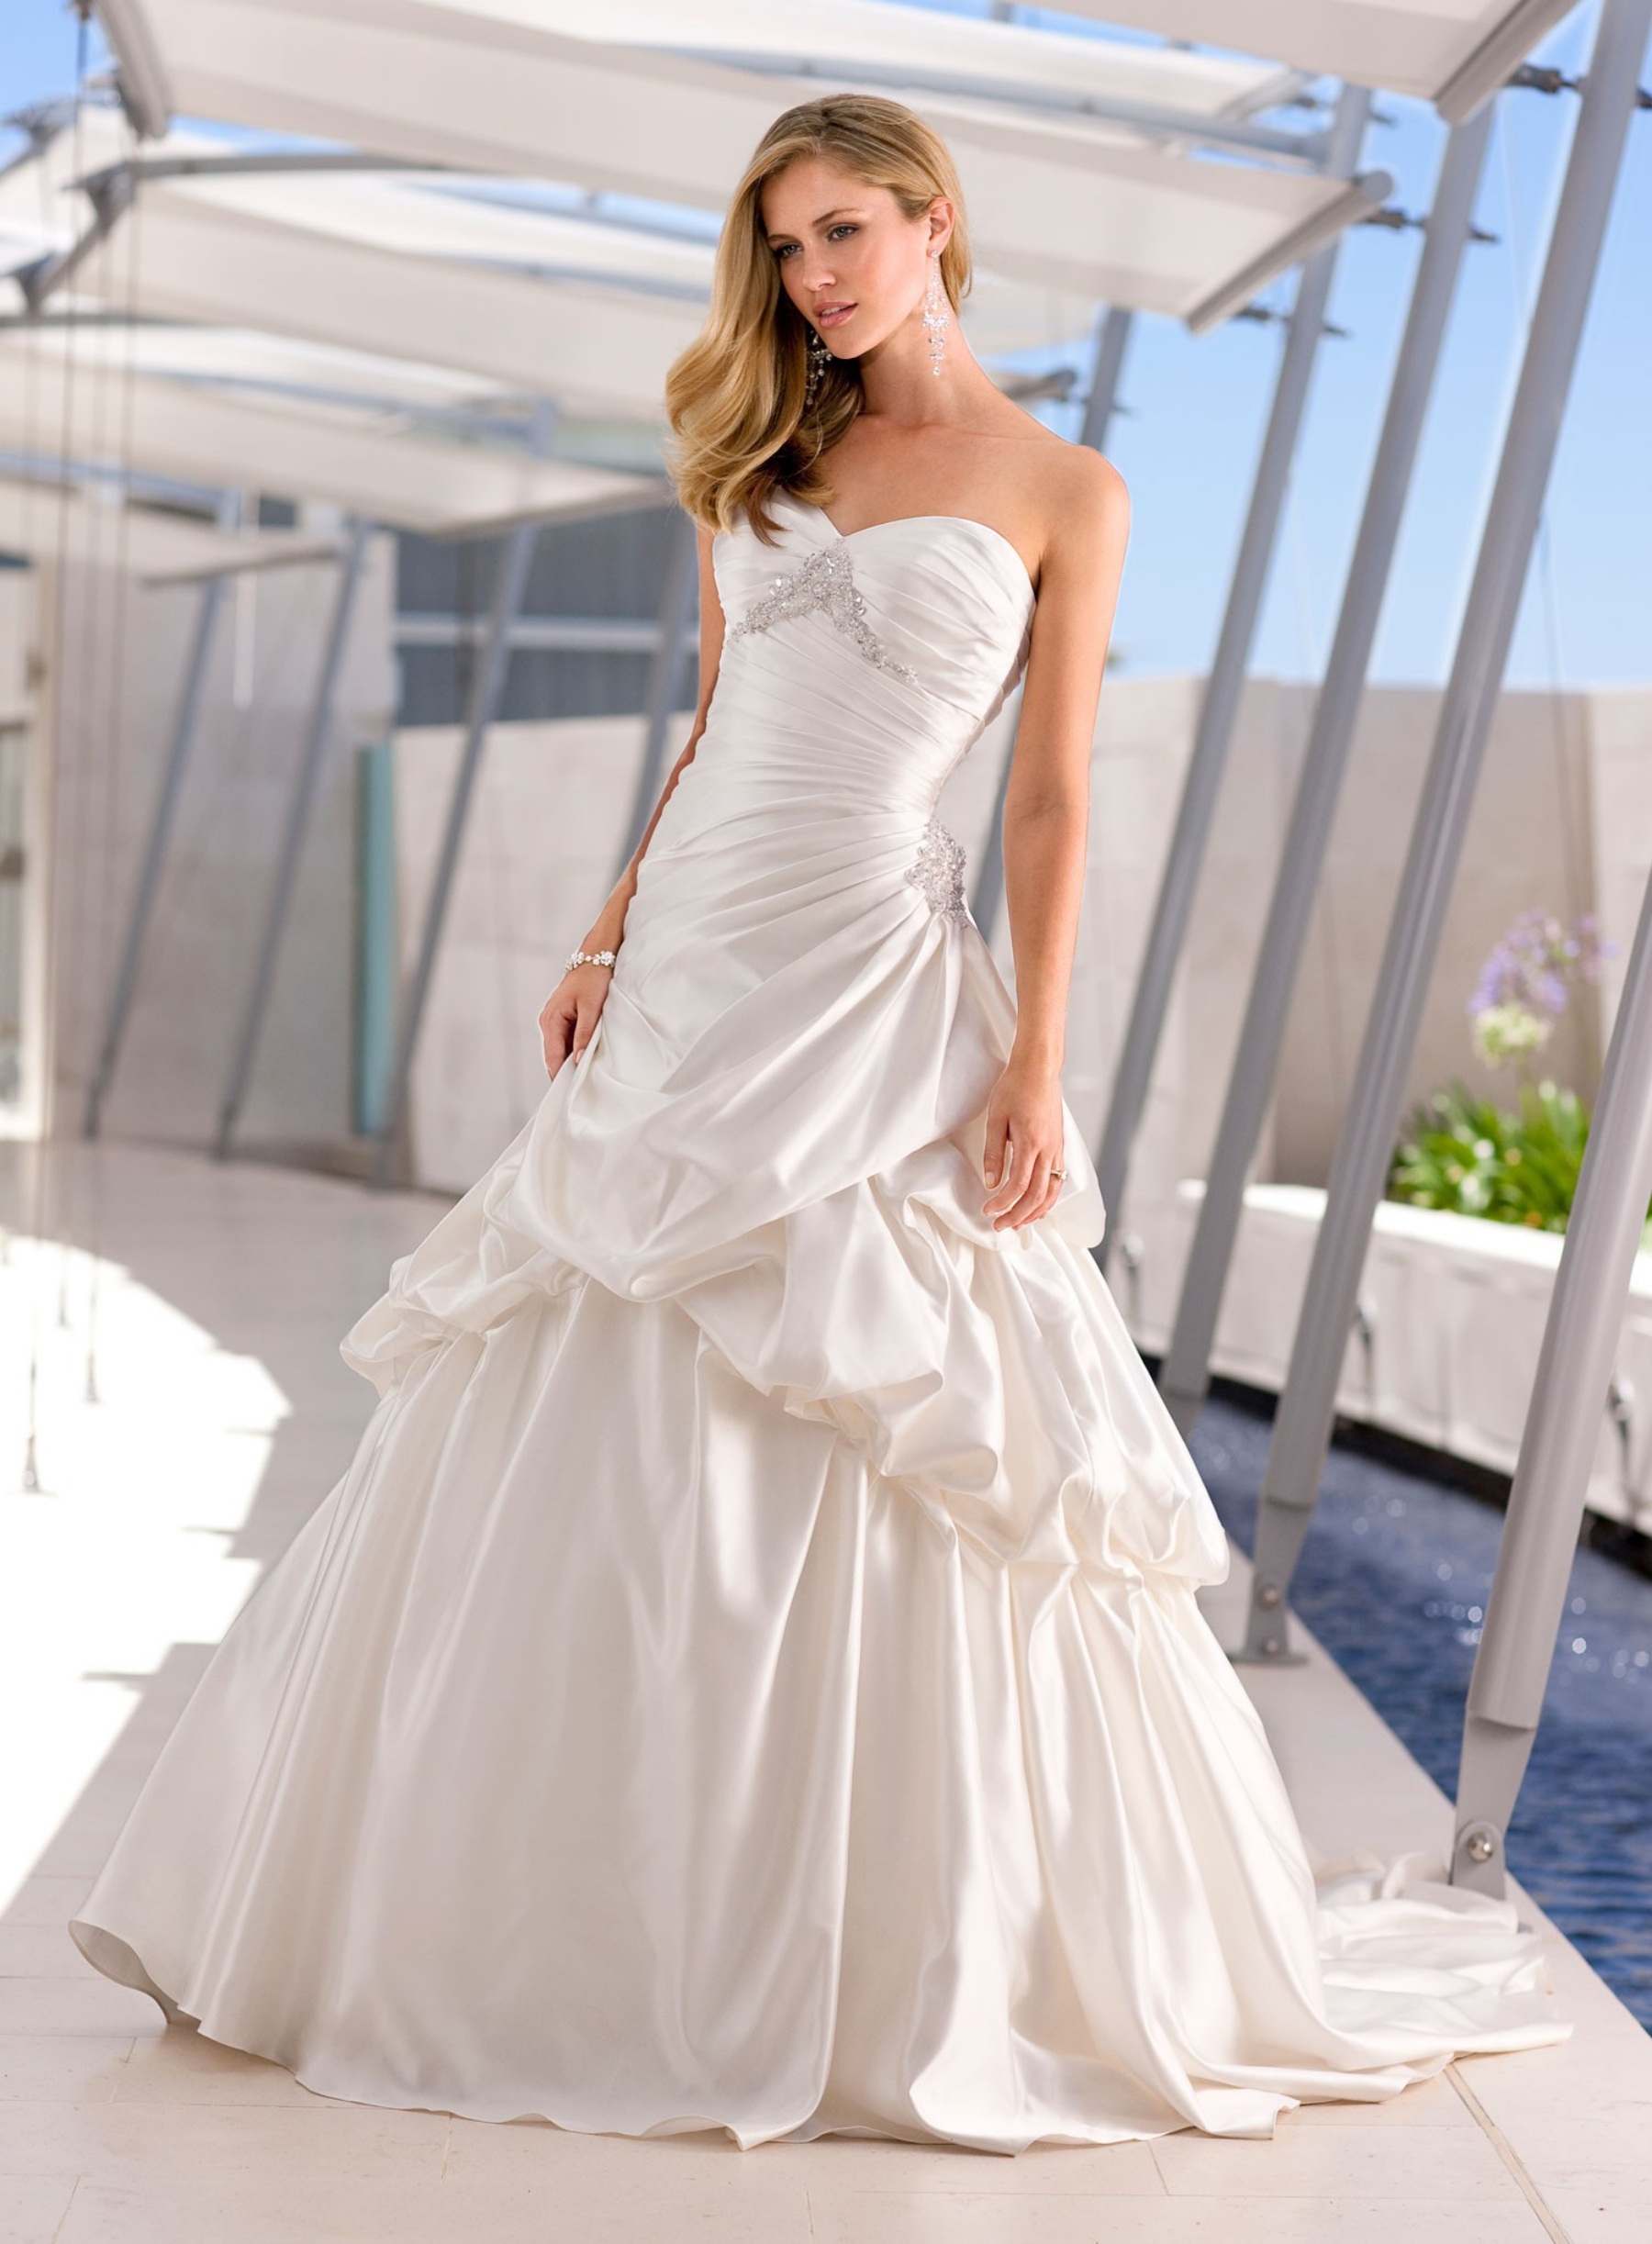 14 cheap wedding dresses under 100 getfashionideas cheap wedding dresses under 100 dollars junglespirit Images